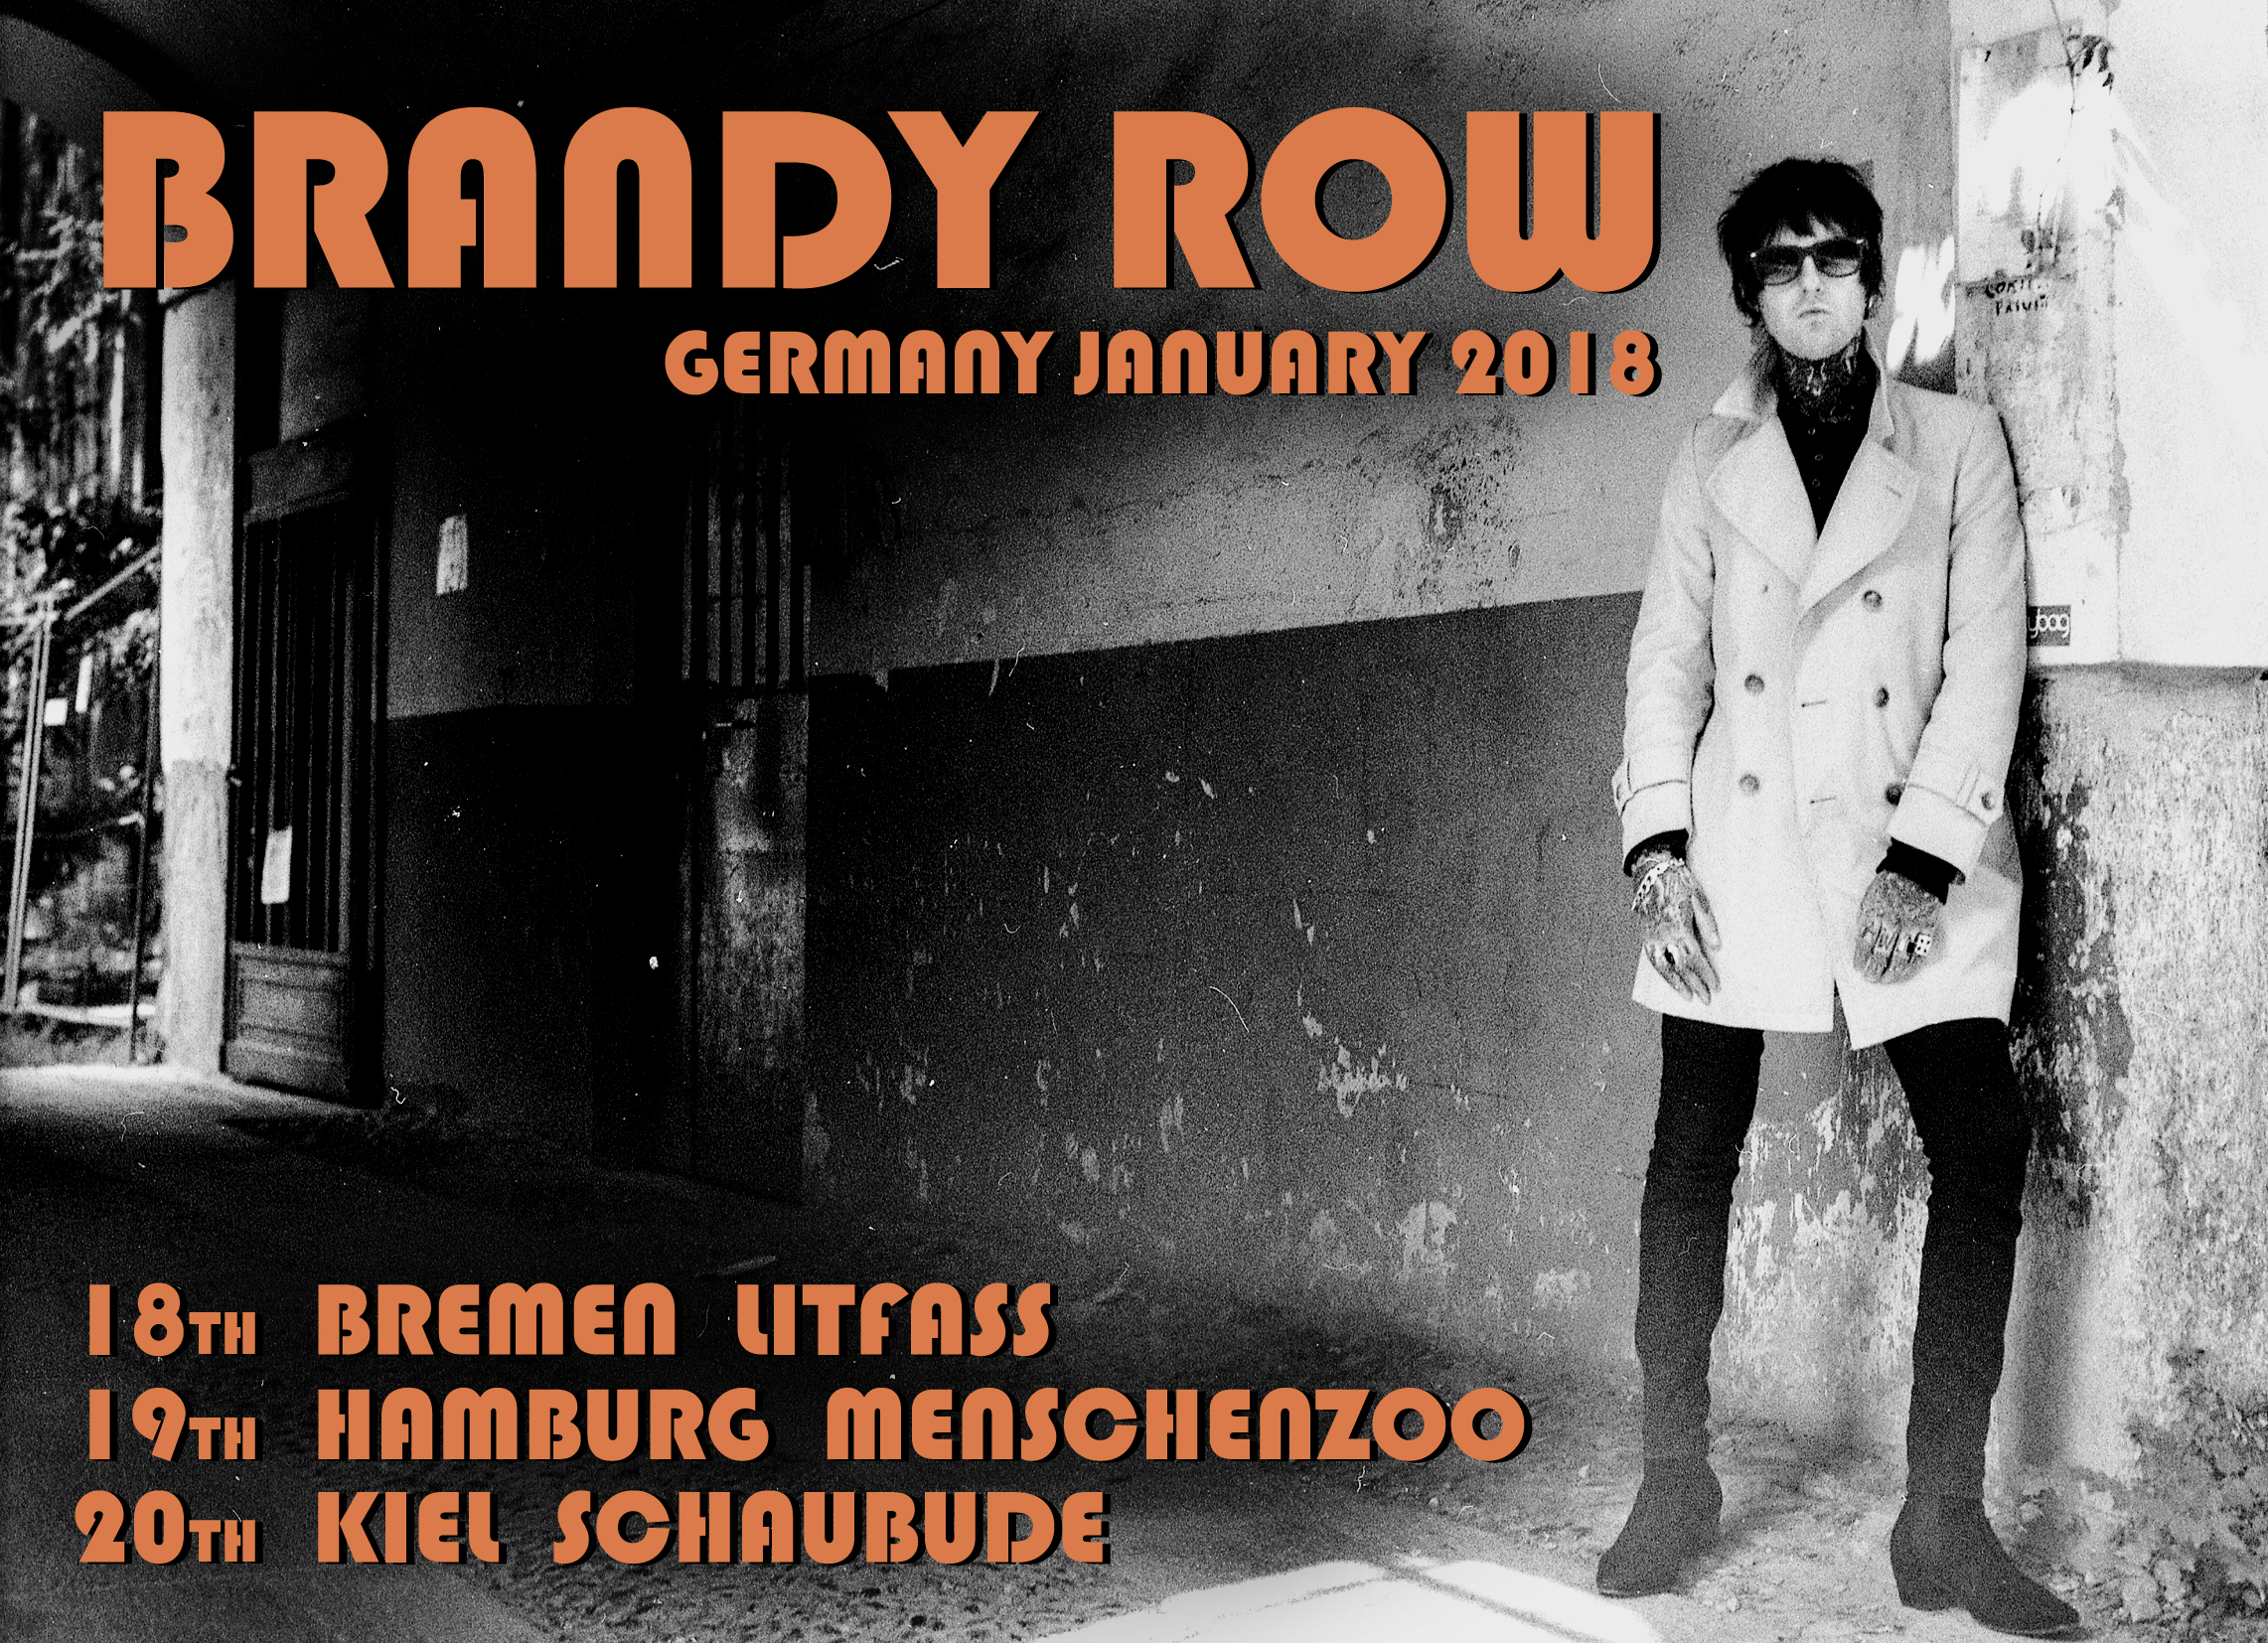 Next January I will be back in Germany for a run of dates!